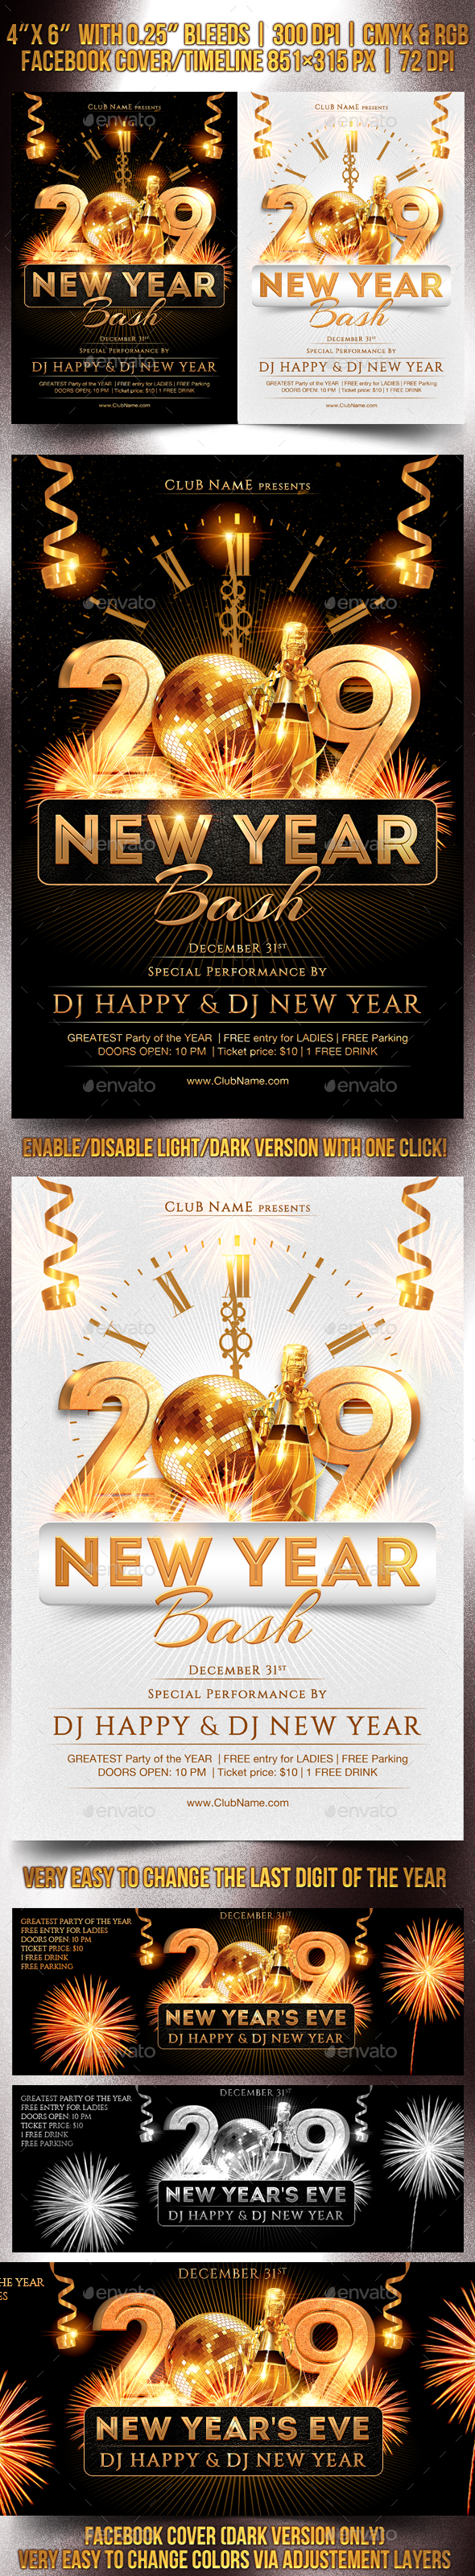 New Year Bash Flyer Template - Clubs & Parties Events